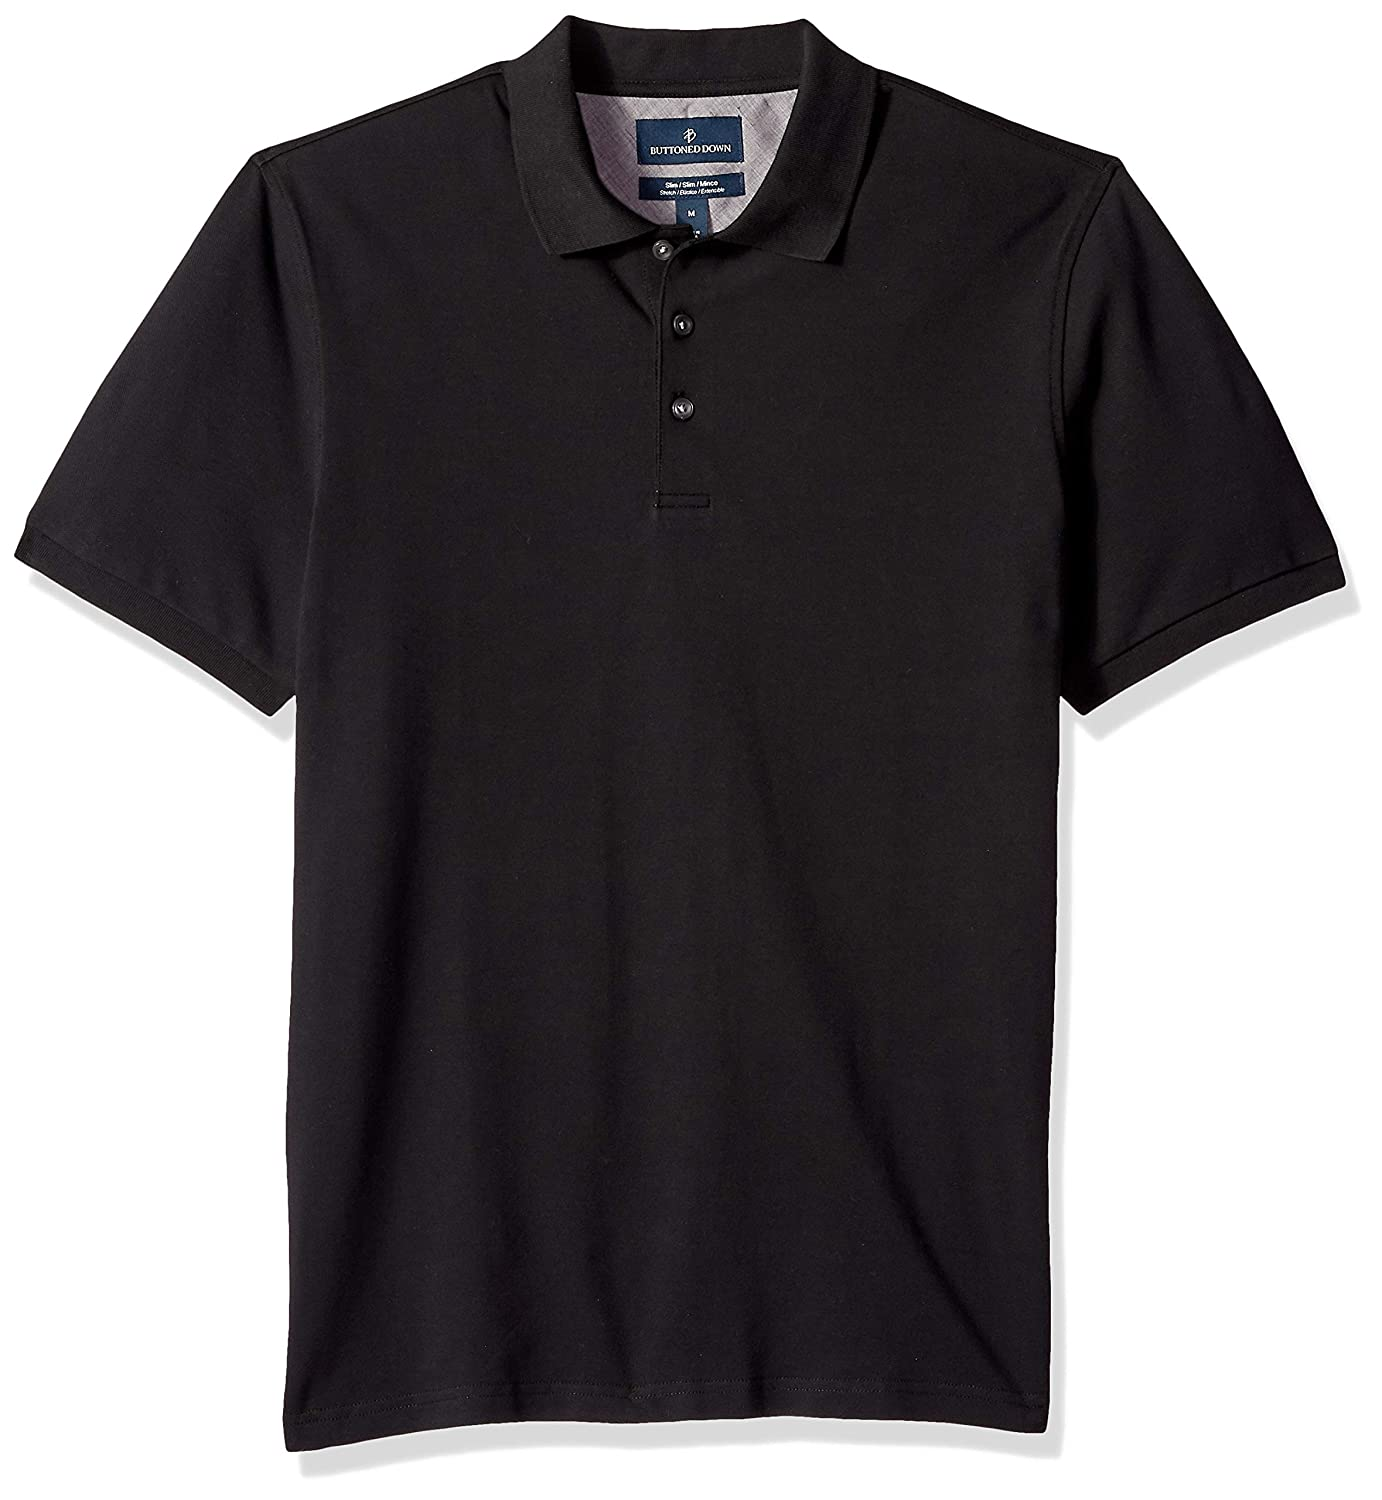 01c0d77b9642 Amazon.com: Amazon Brand - BUTTONED DOWN Men's Slim-Fit Supima Cotton  Stretch Pique Polo Shirt: Clothing